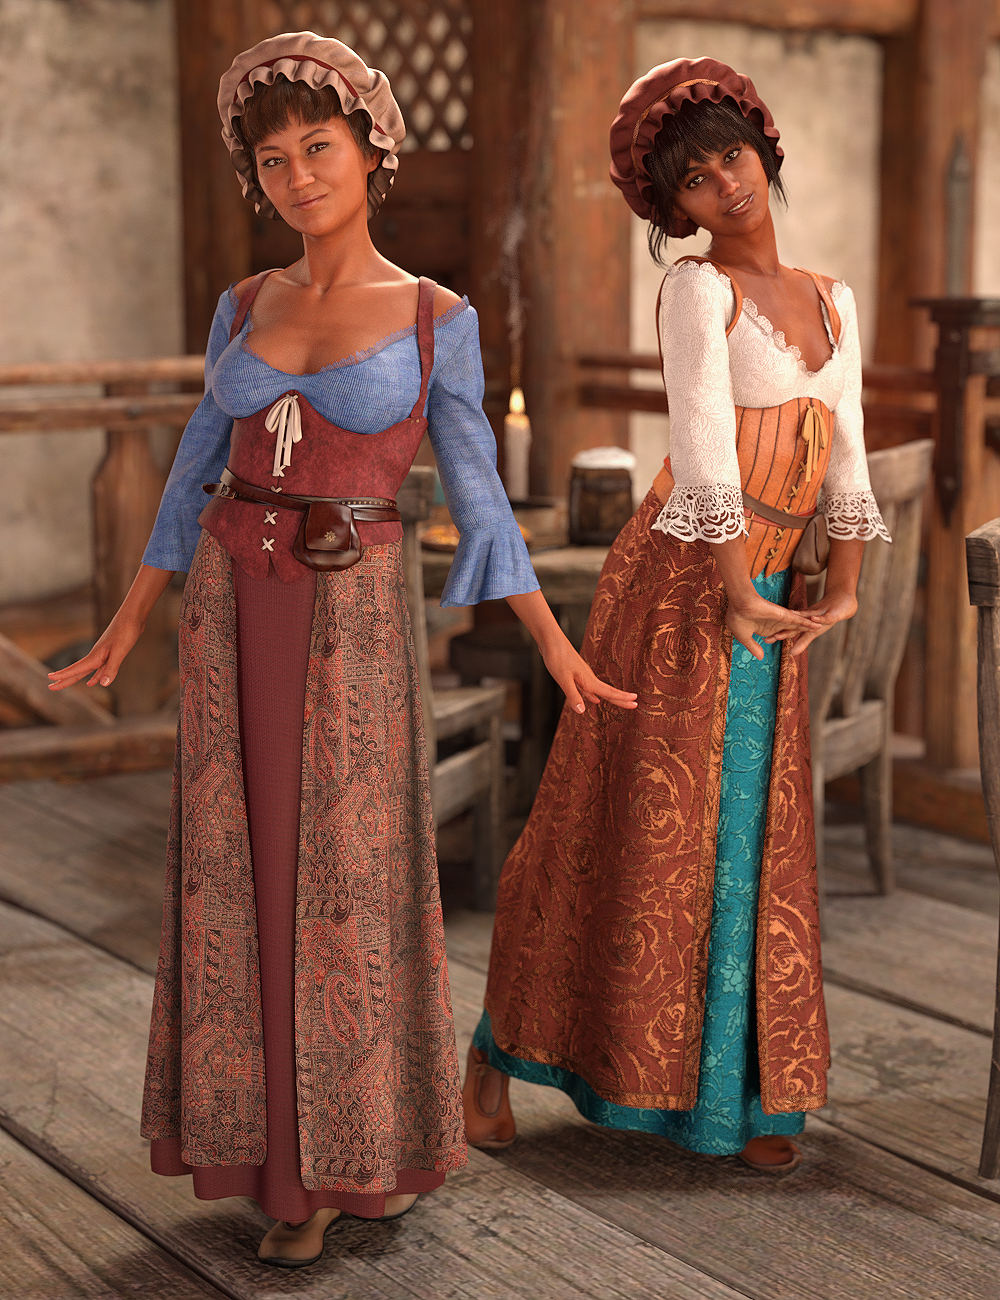 dForce Medieval Barmaid Textures : Weary by: Moonscape GraphicsSade, 3D Models by Daz 3D